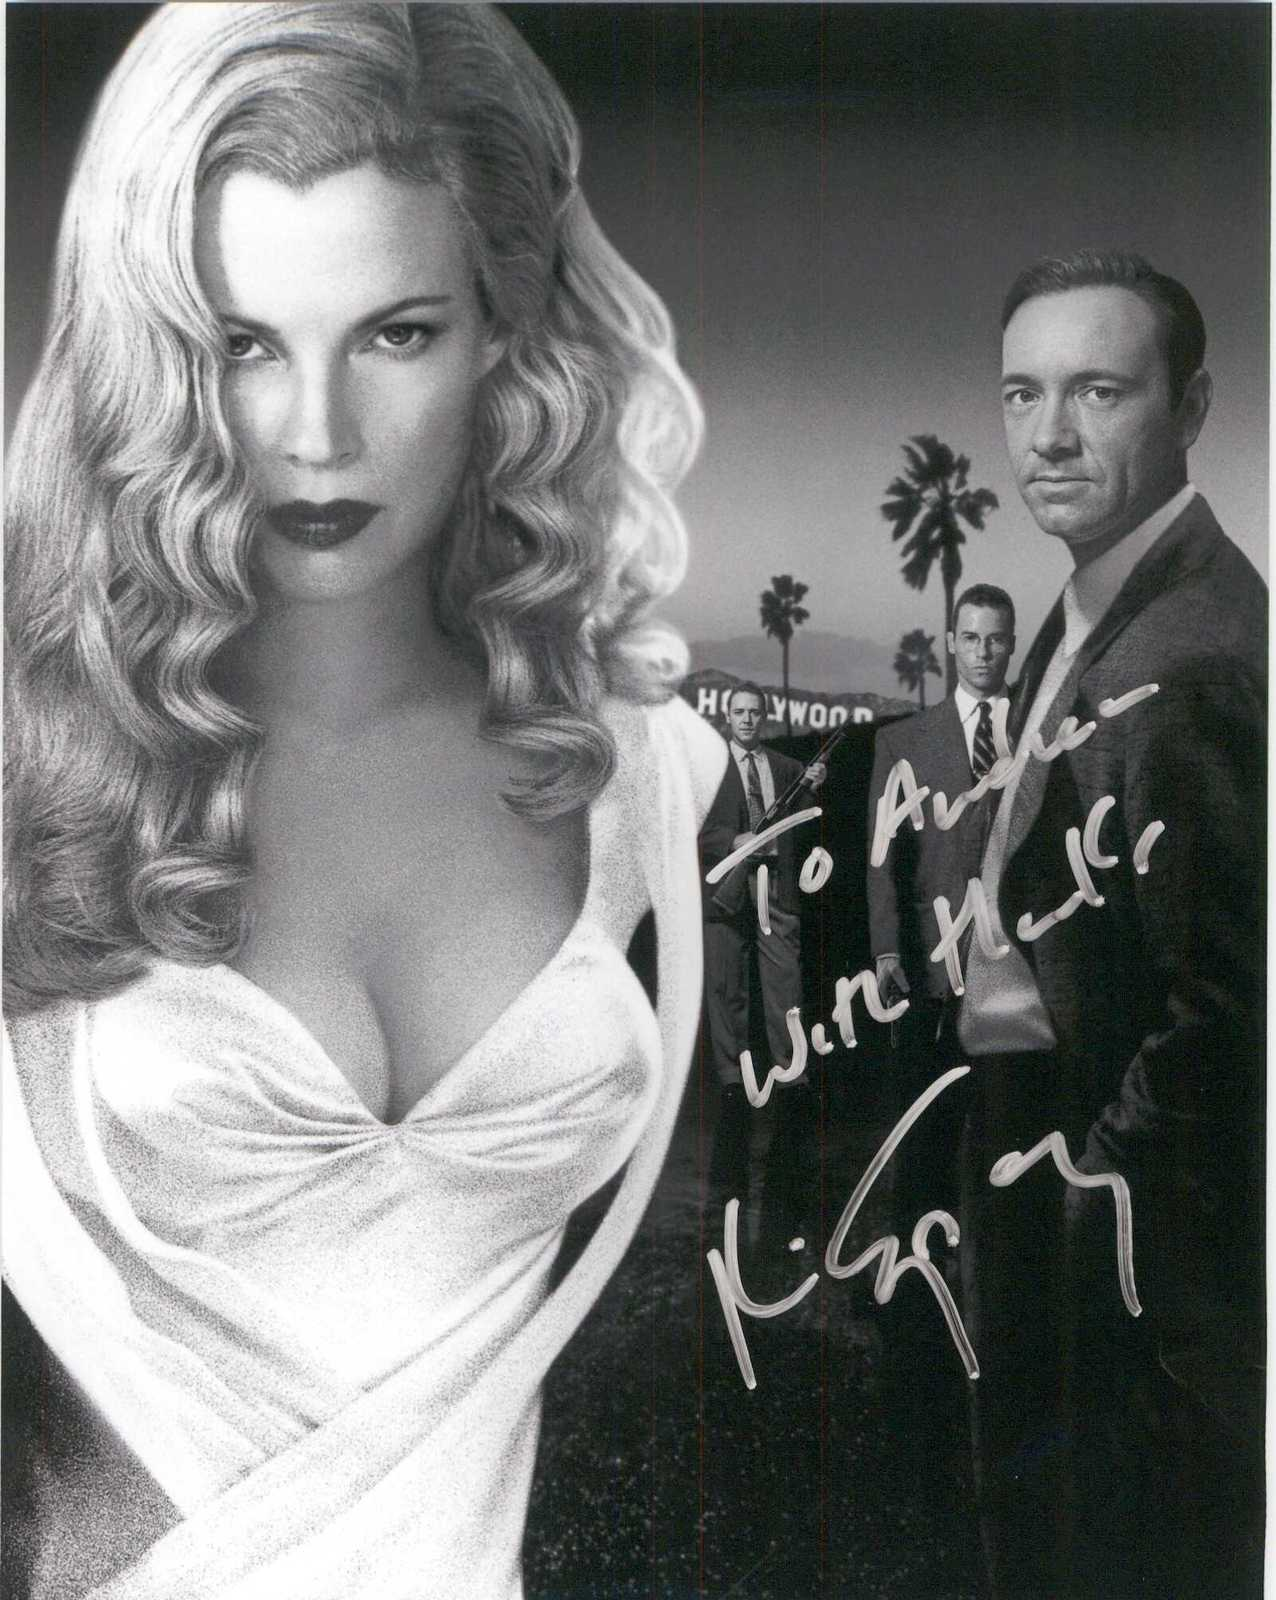 Primary image for Kevin Spacey Signed Autographed Glossy 8x10 Photo